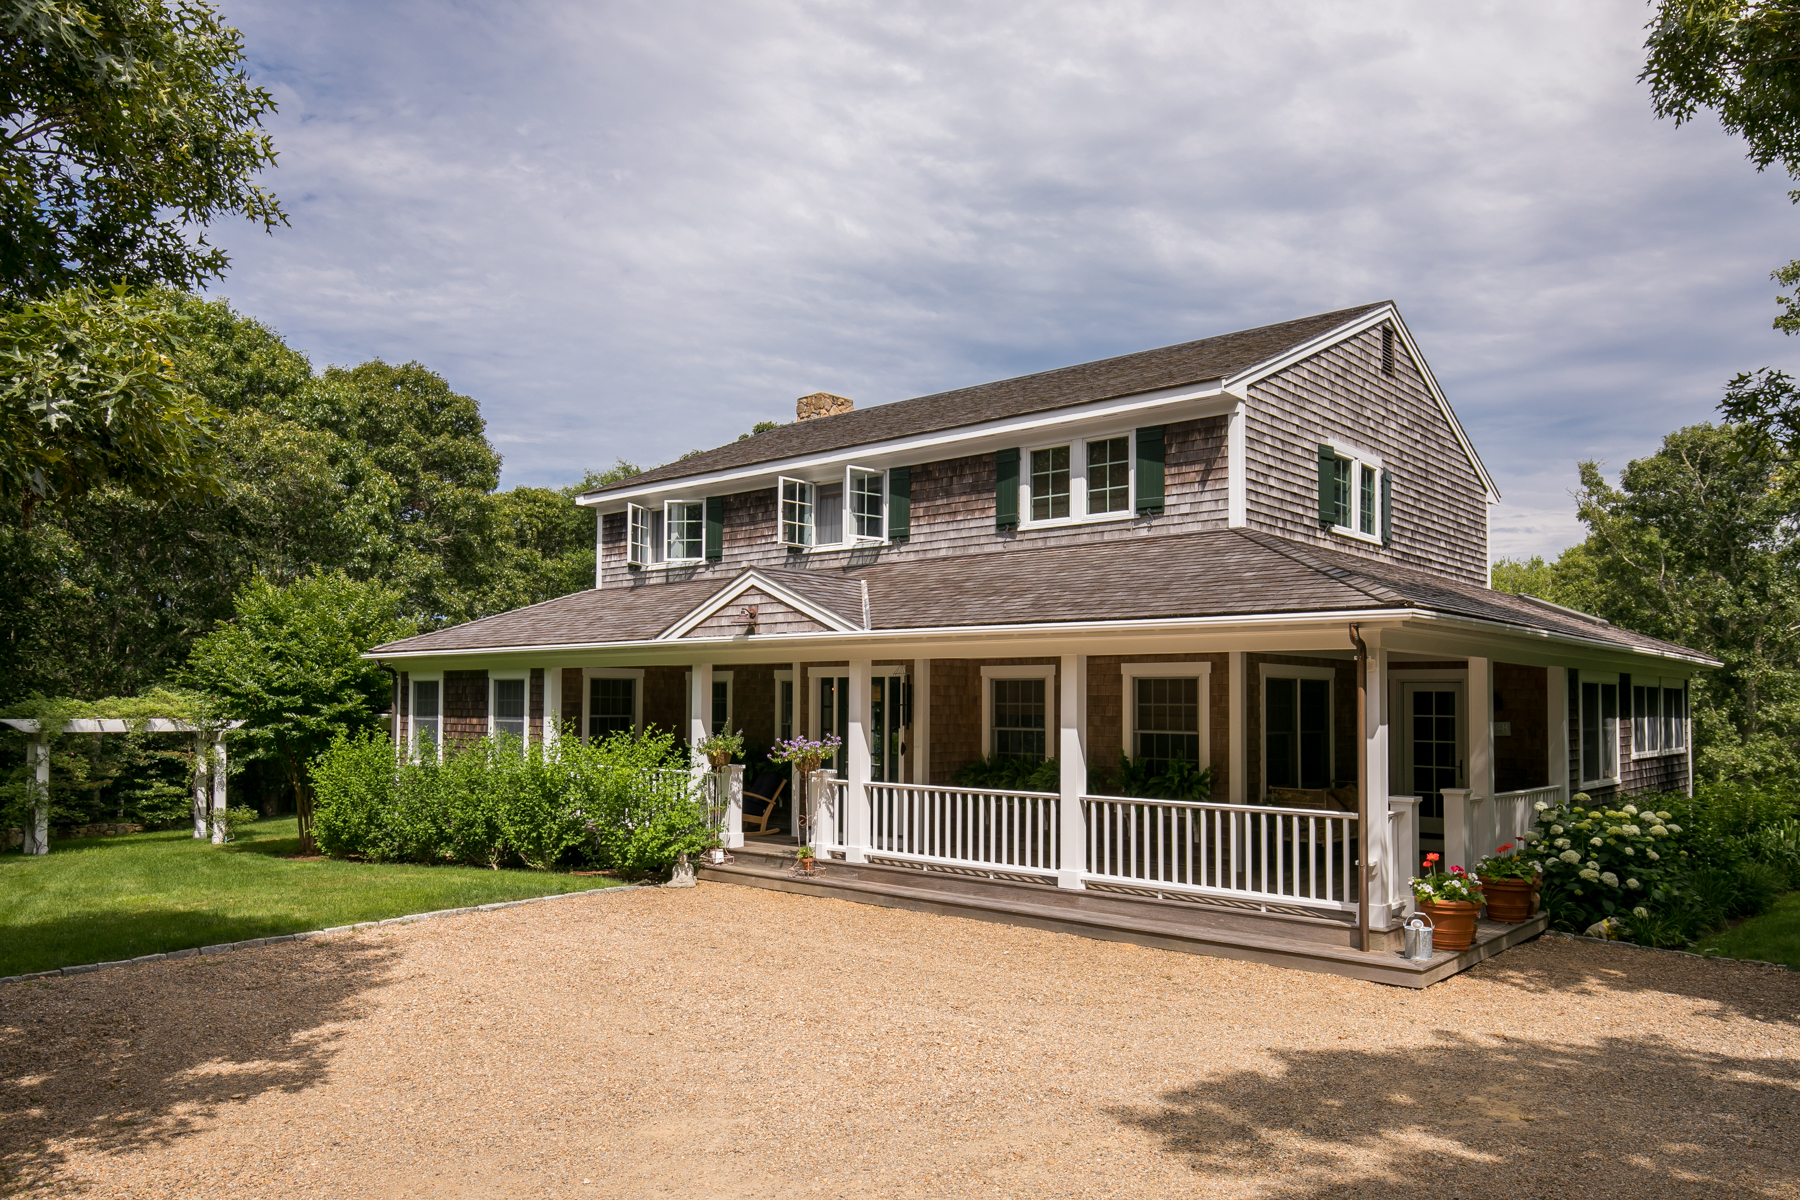 Single Family Home for Sale at Comtemporary Farmhouse in Chilmark 15 Valley Lane Chilmark, Massachusetts 02535 United States